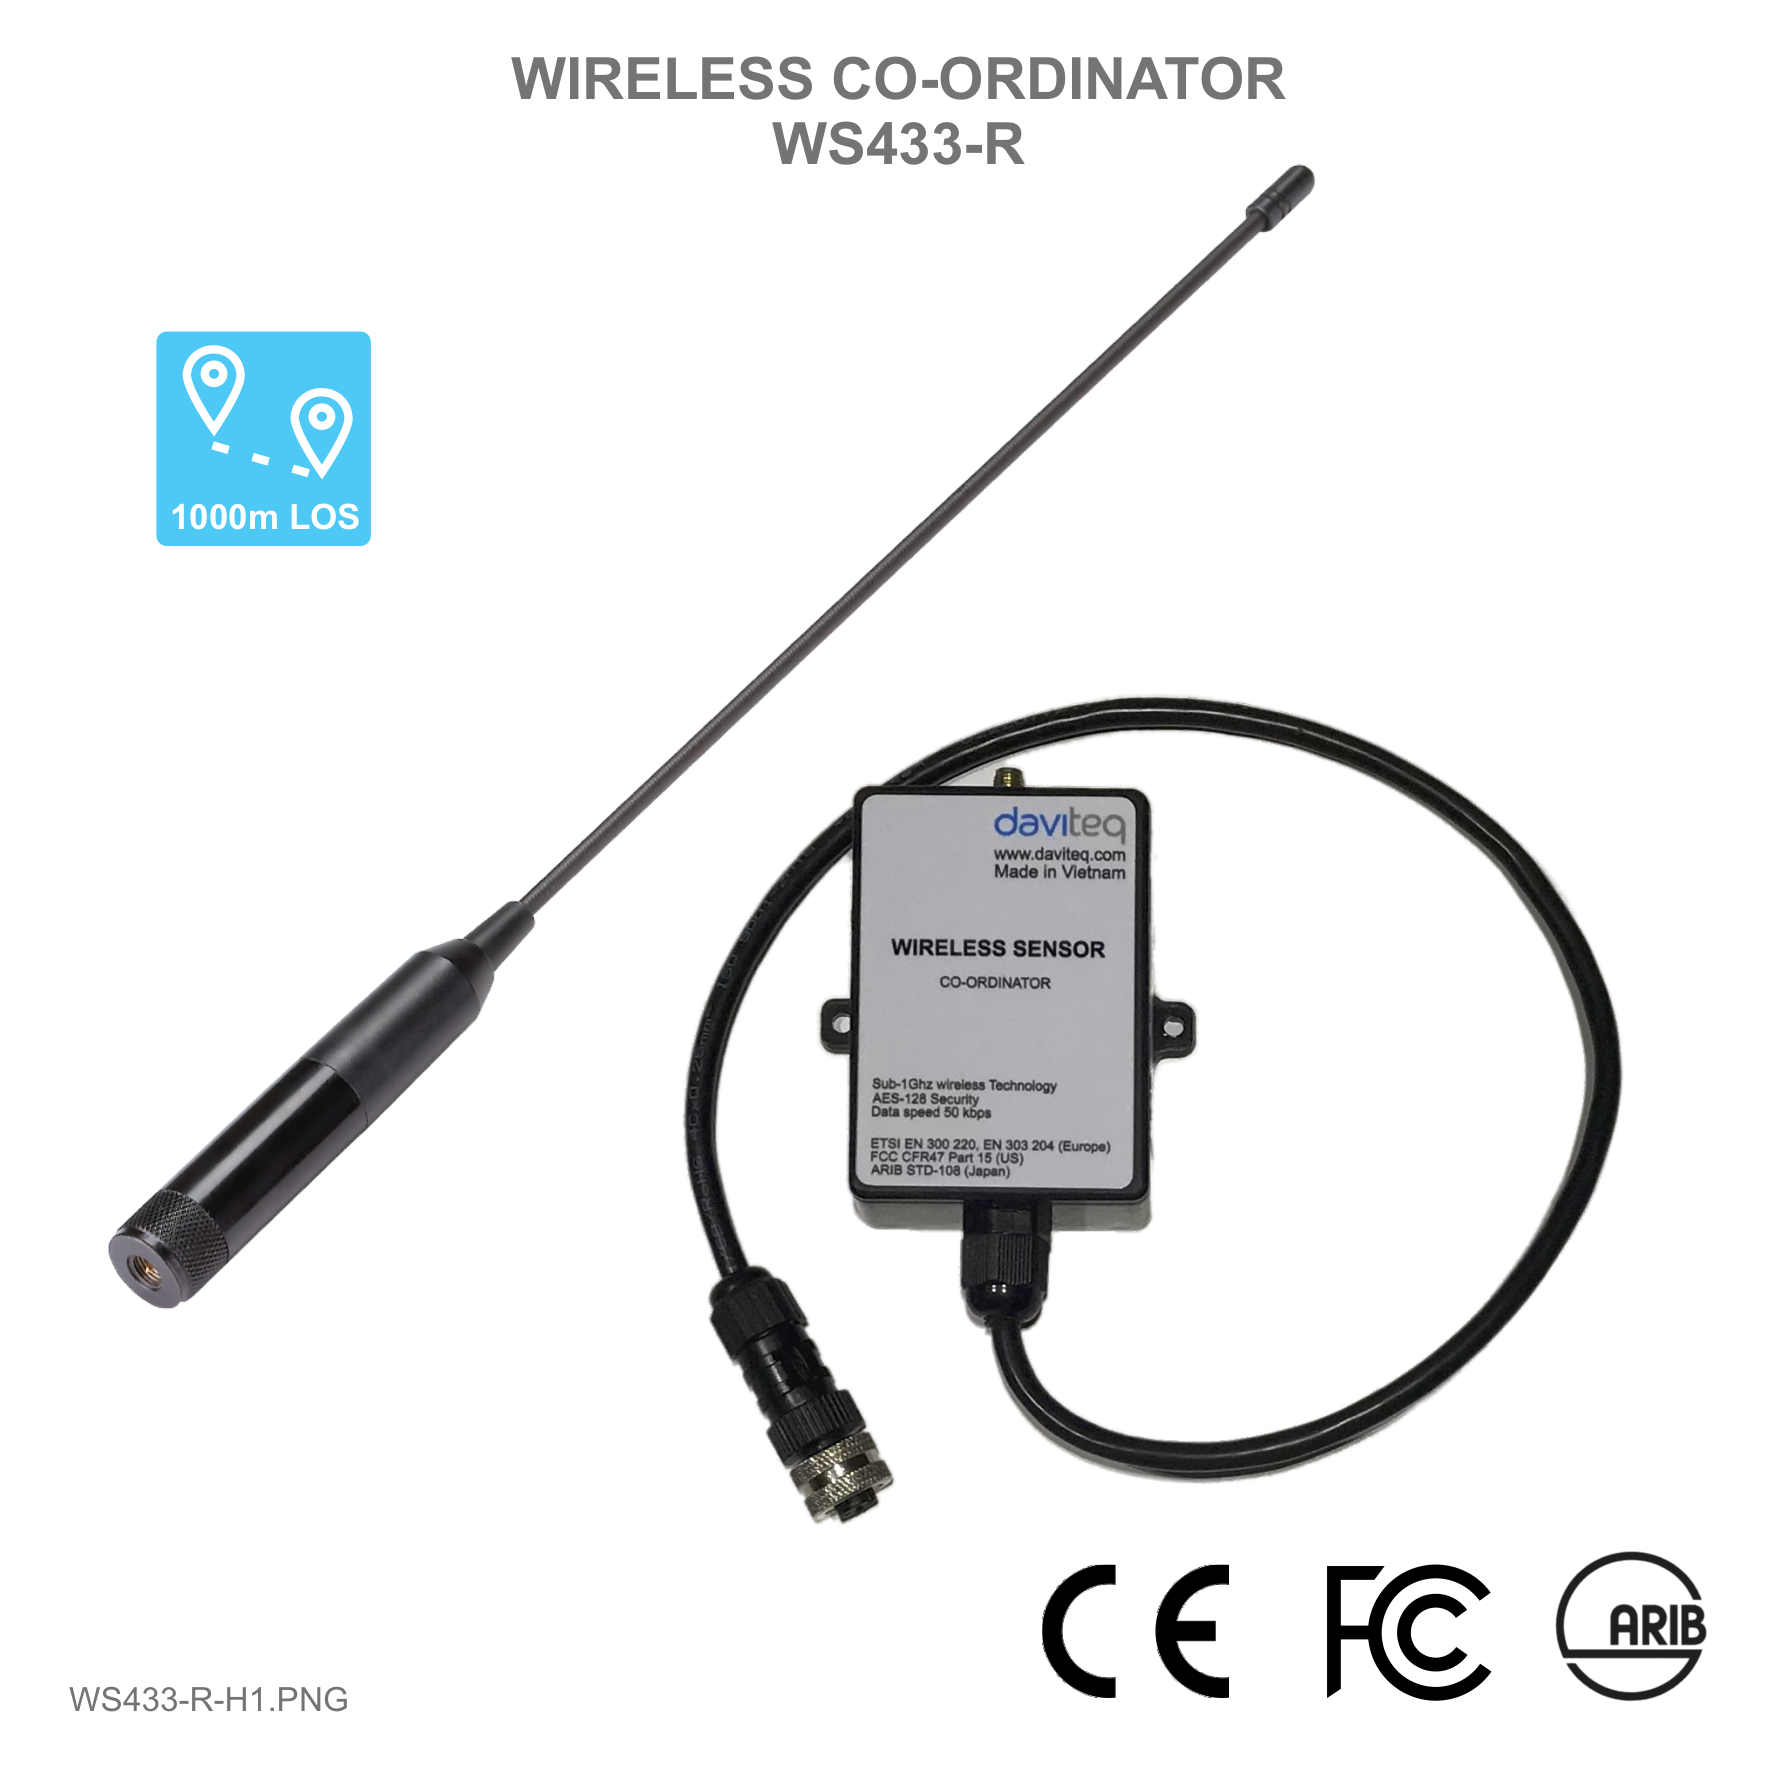 Wireless Co-ordinator